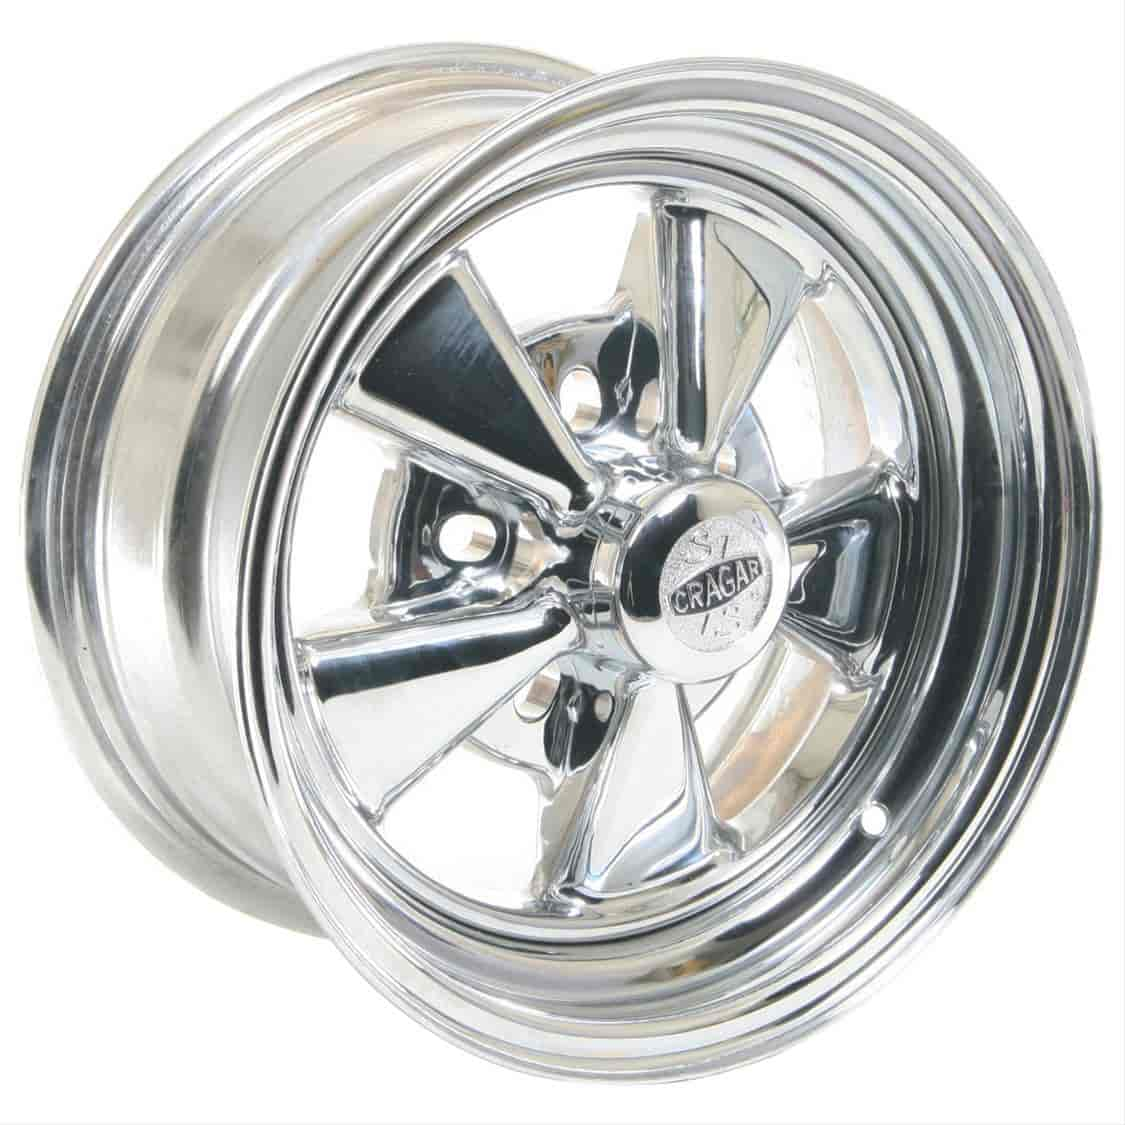 Cragar 61714 - Cragar 08/61 Series S/S Super Sport Wheels